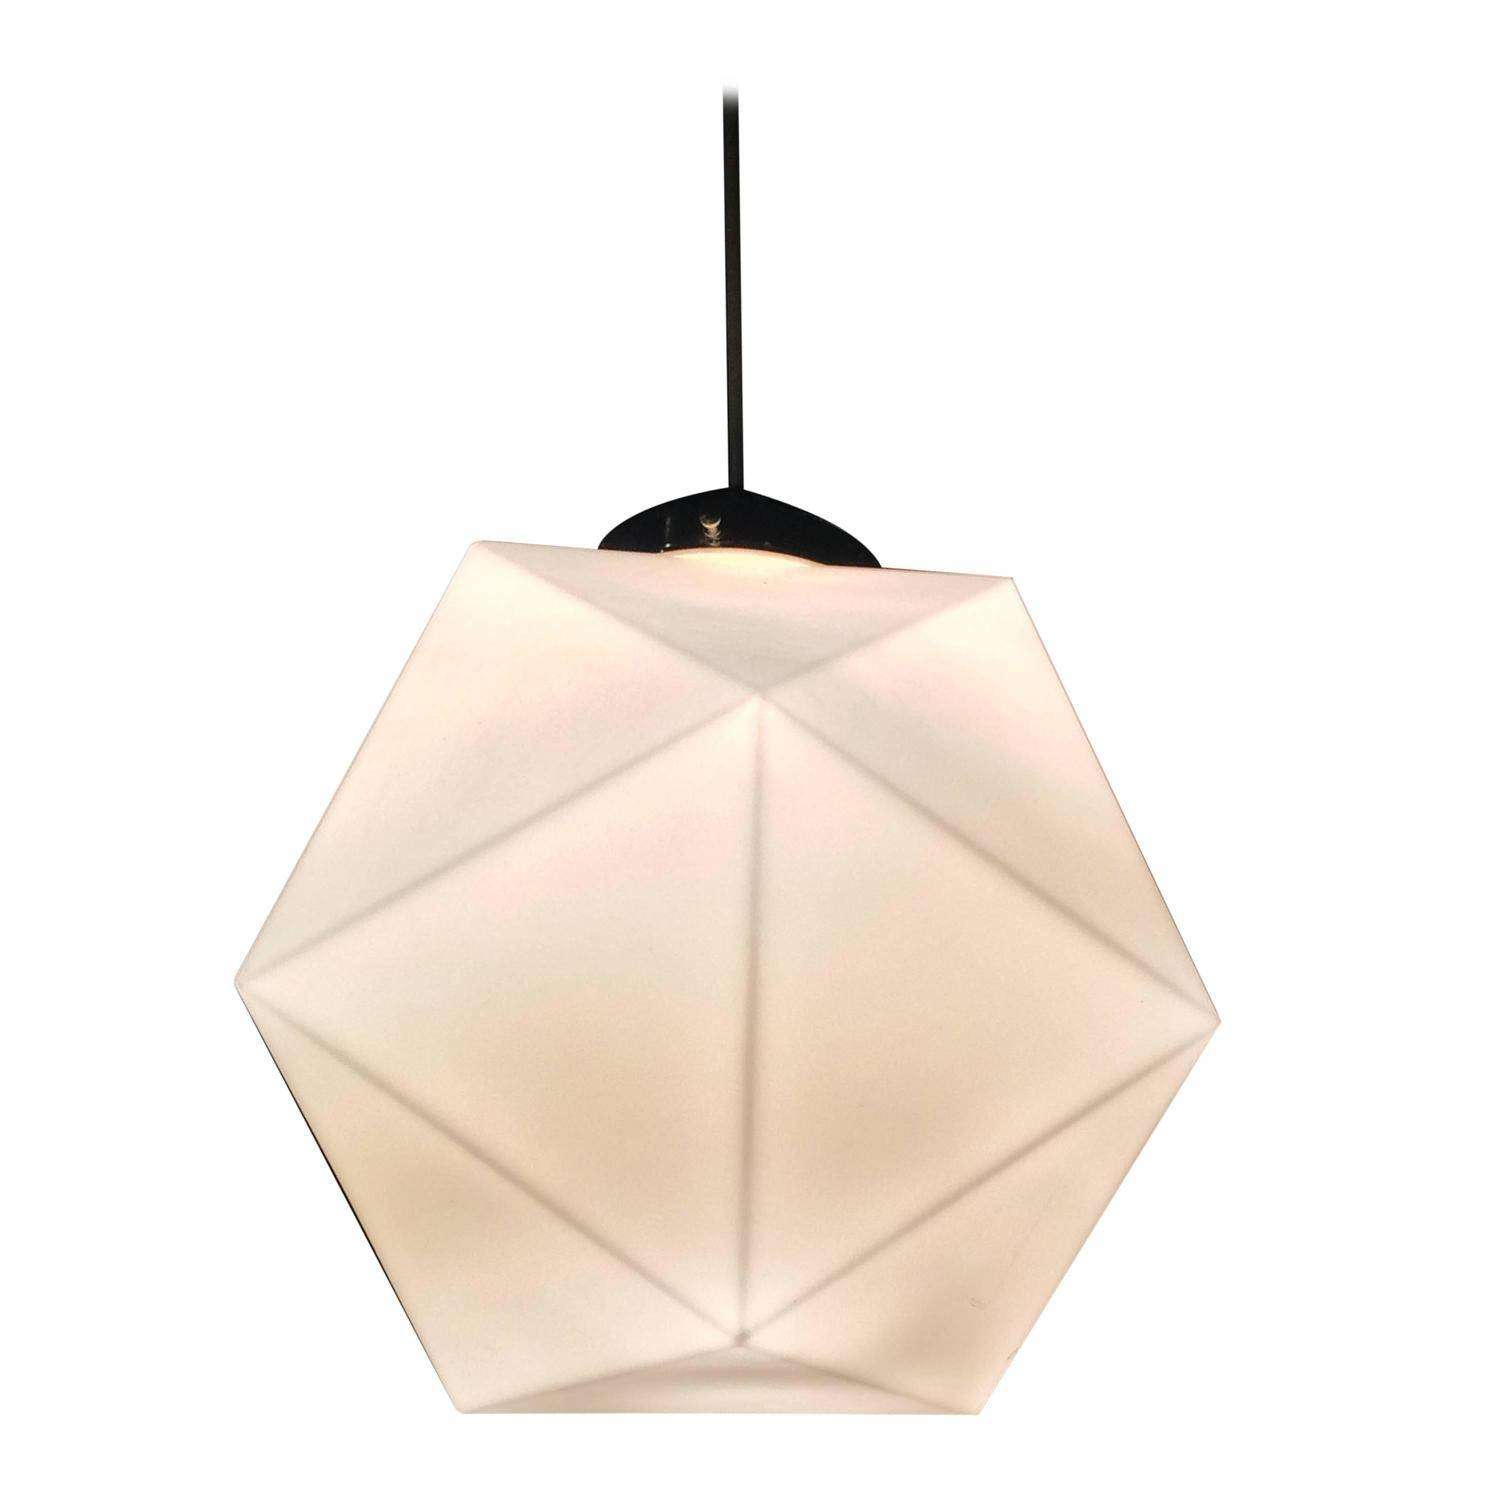 Mid Century Faceted Milk Glass Geometric Pendant Light At 1Stdibs Pertaining To Milk Glass Pendant Lights (View 7 of 15)